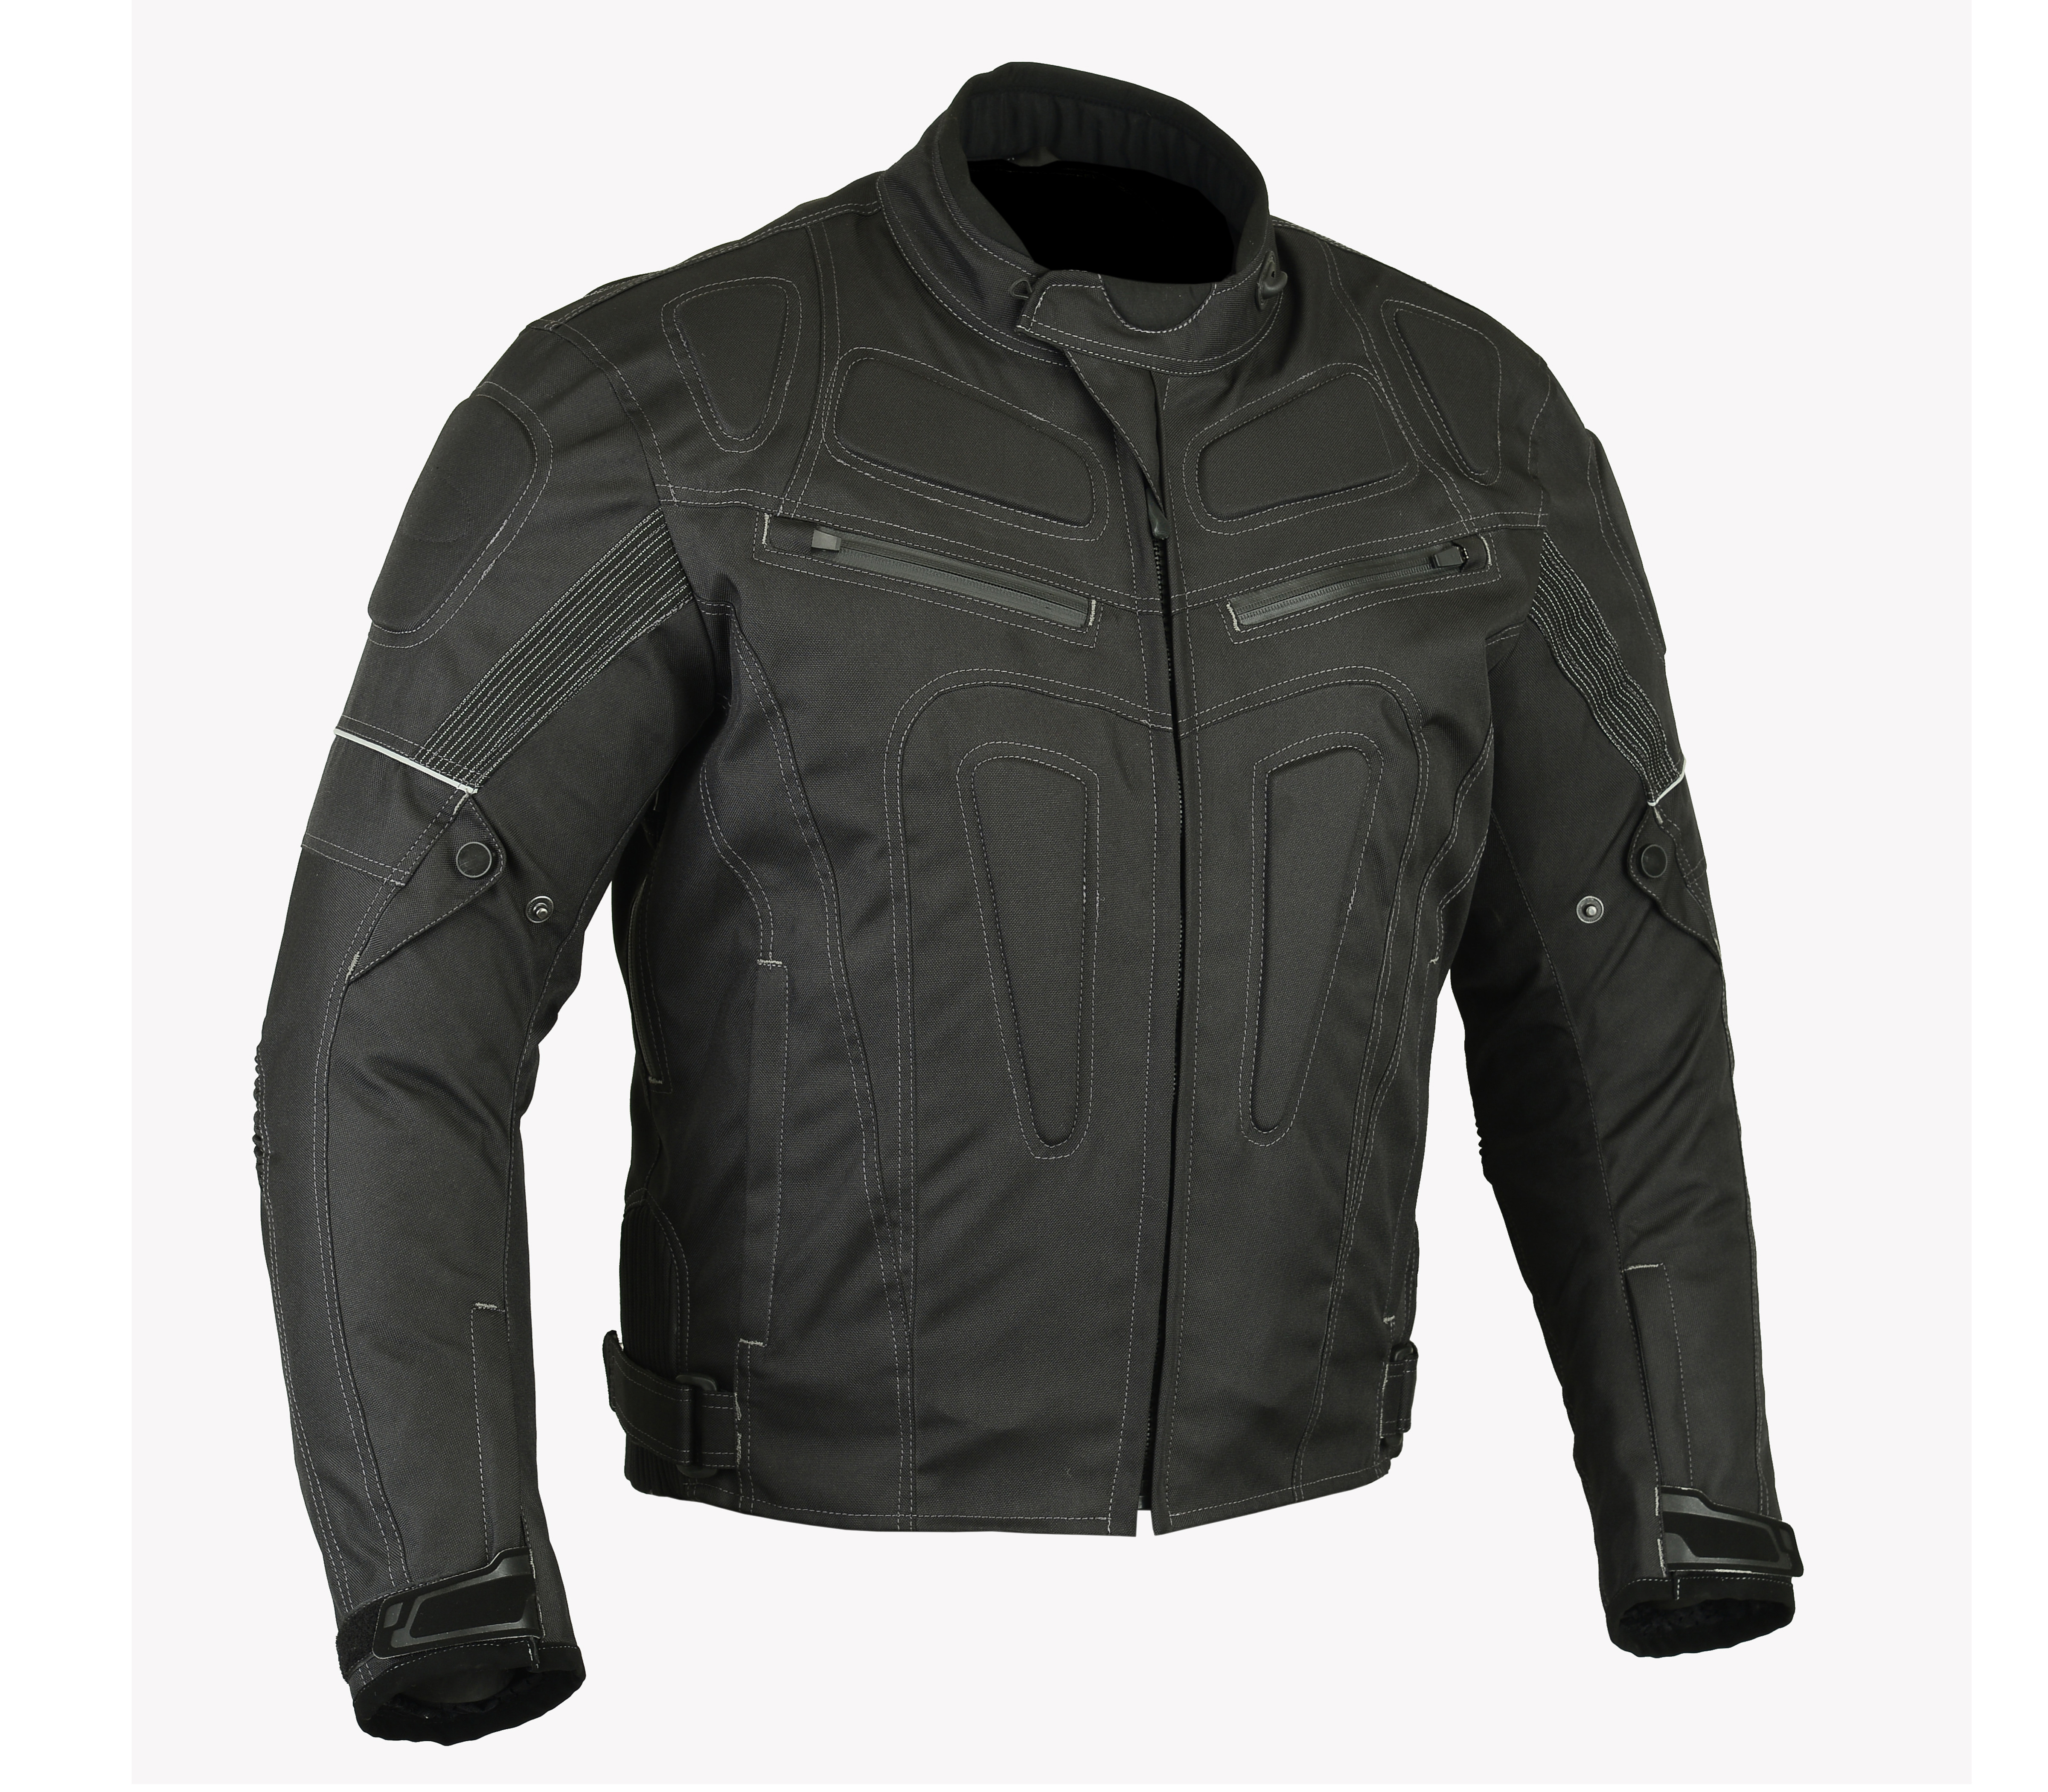 motorcycle jacket touring diamond sport mens jackets gear biker adventure pants altimate